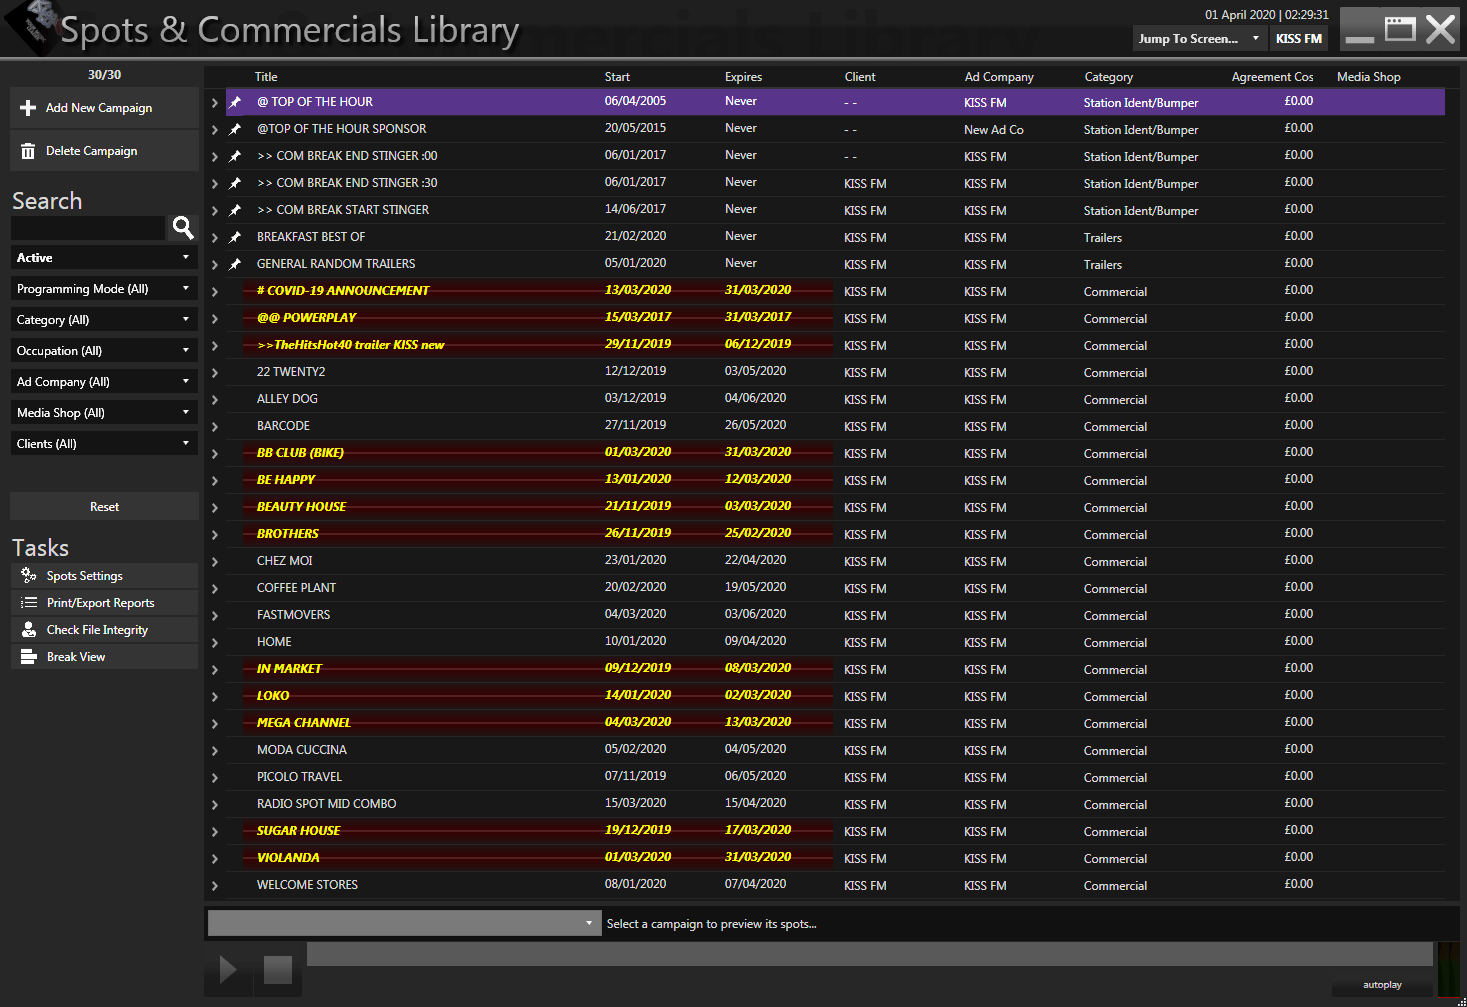 The Spots & Commercials library is where you store and schedule all your commercials and jingles used in a commercial break. The commercials marked red are the ones that have expired and do not air anymore. You can also pin commercials or jingles to the top so you can have easy access to them.